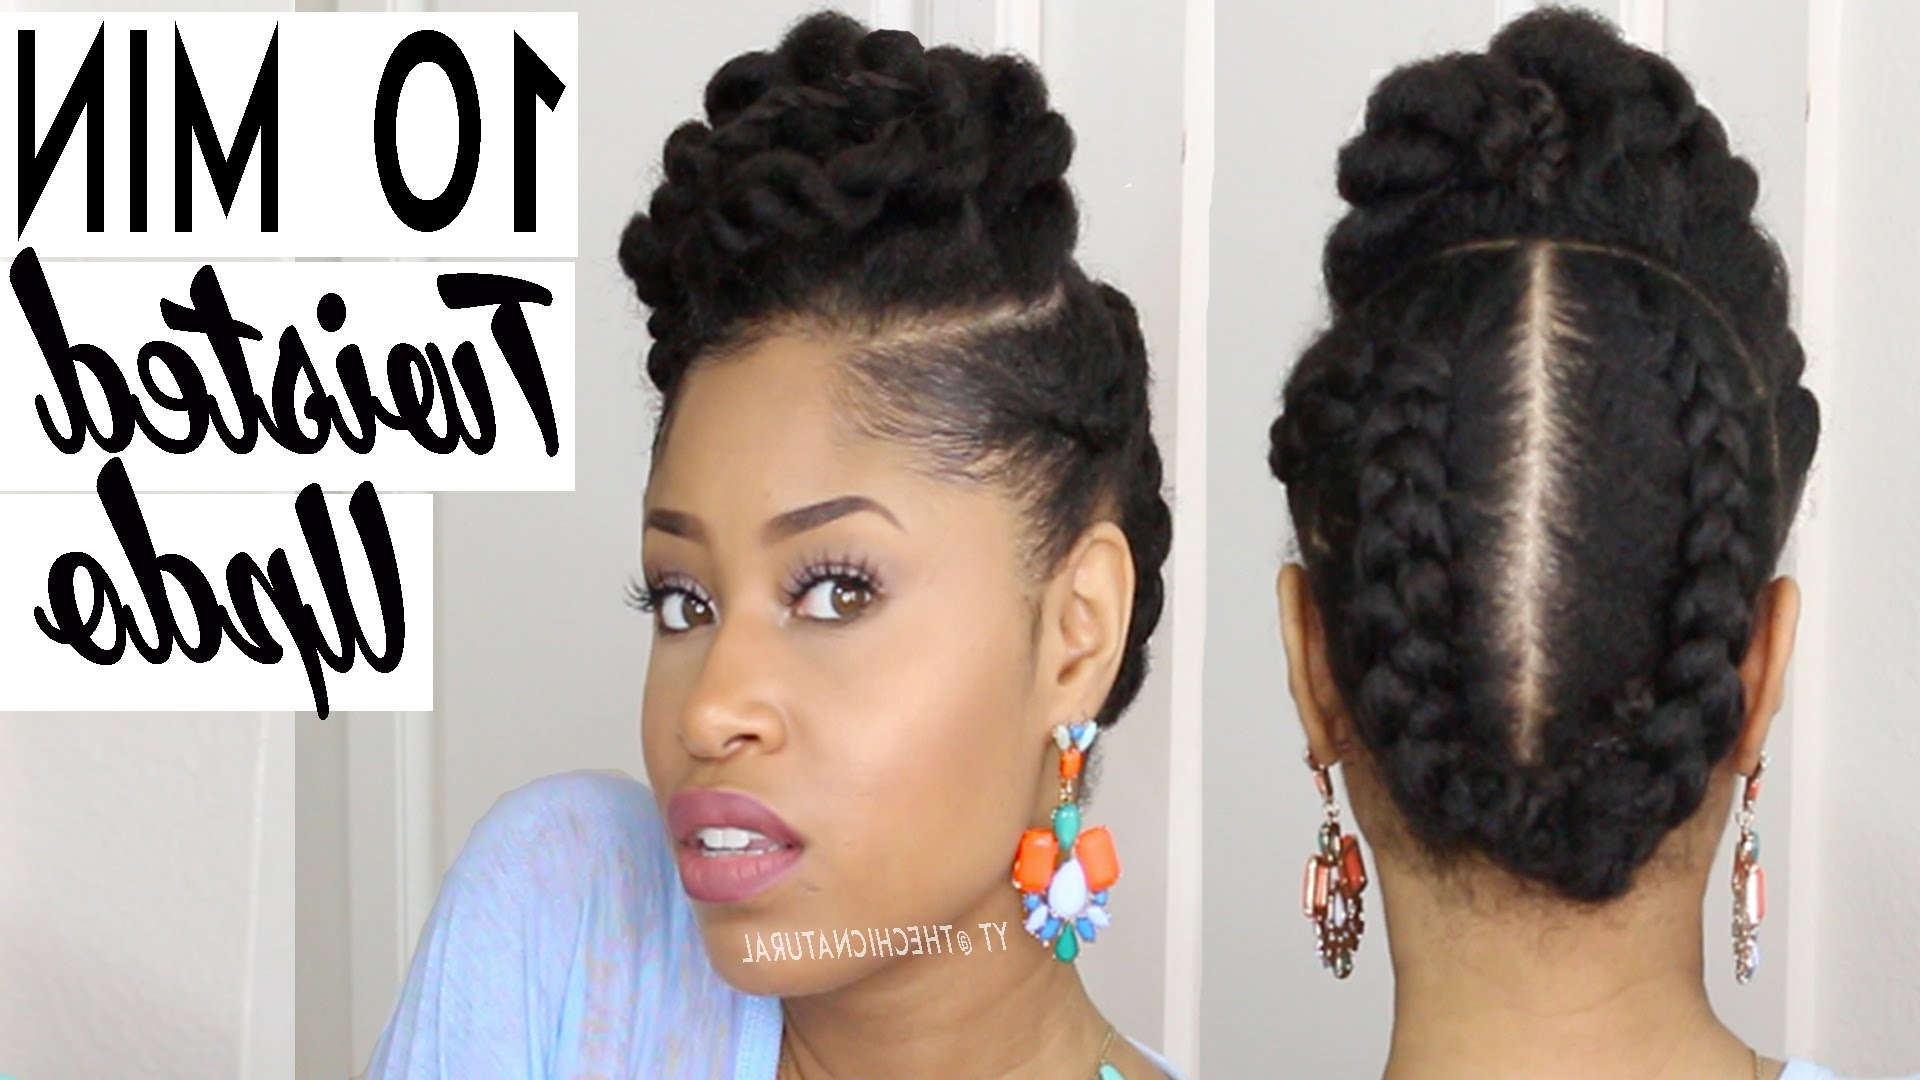 The 10 Minute Twisted Updo | Natural Hairstyle – Youtube With Quick And Easy Updo Hairstyles For Black Hair (View 13 of 15)